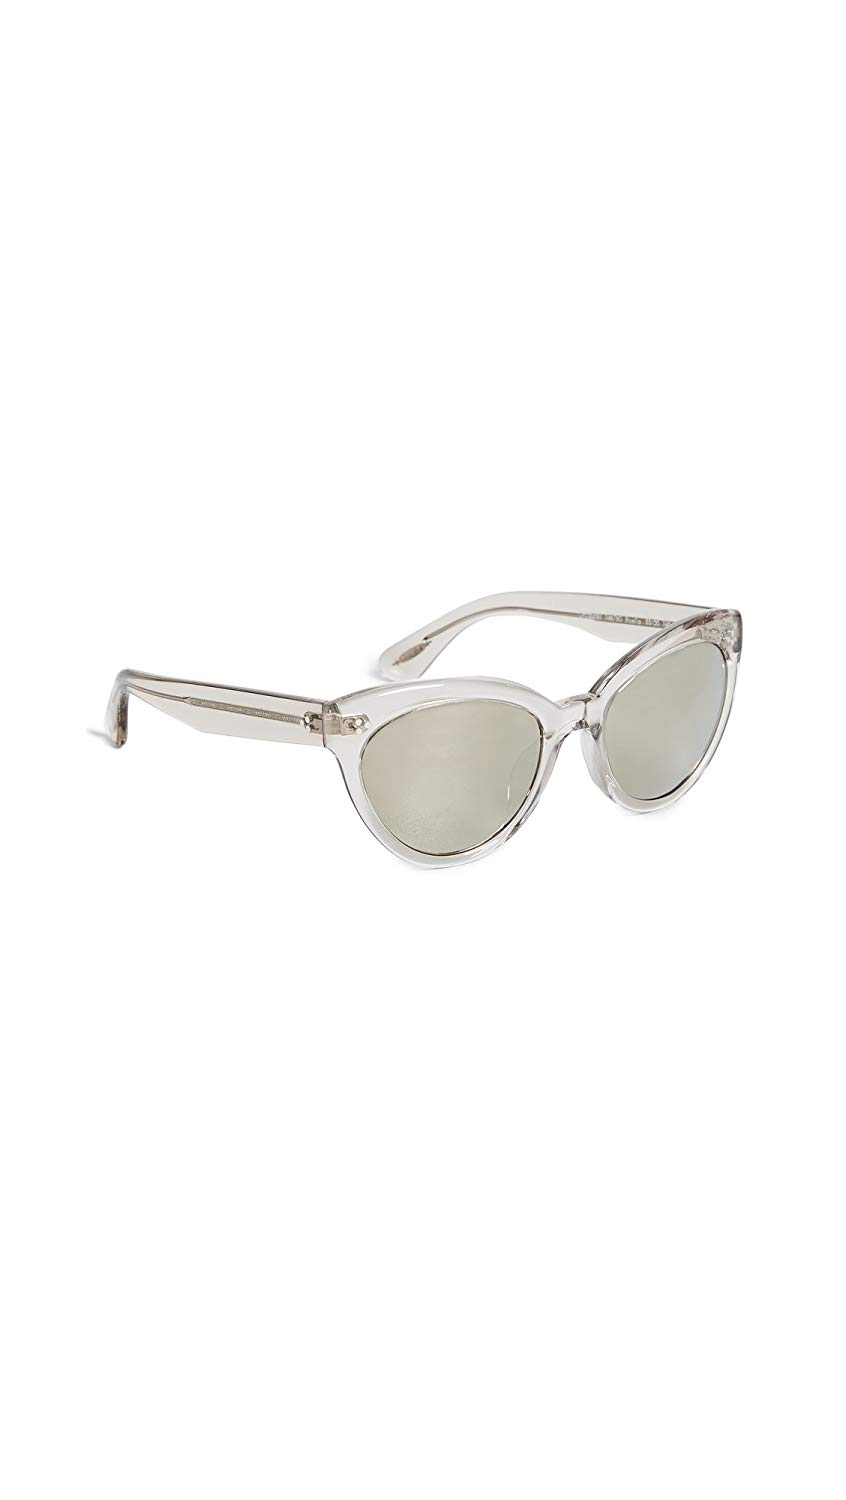 5104dd2d34 Get Quotations · Oliver Peoples Eyewear Women s Roella Sunglasses